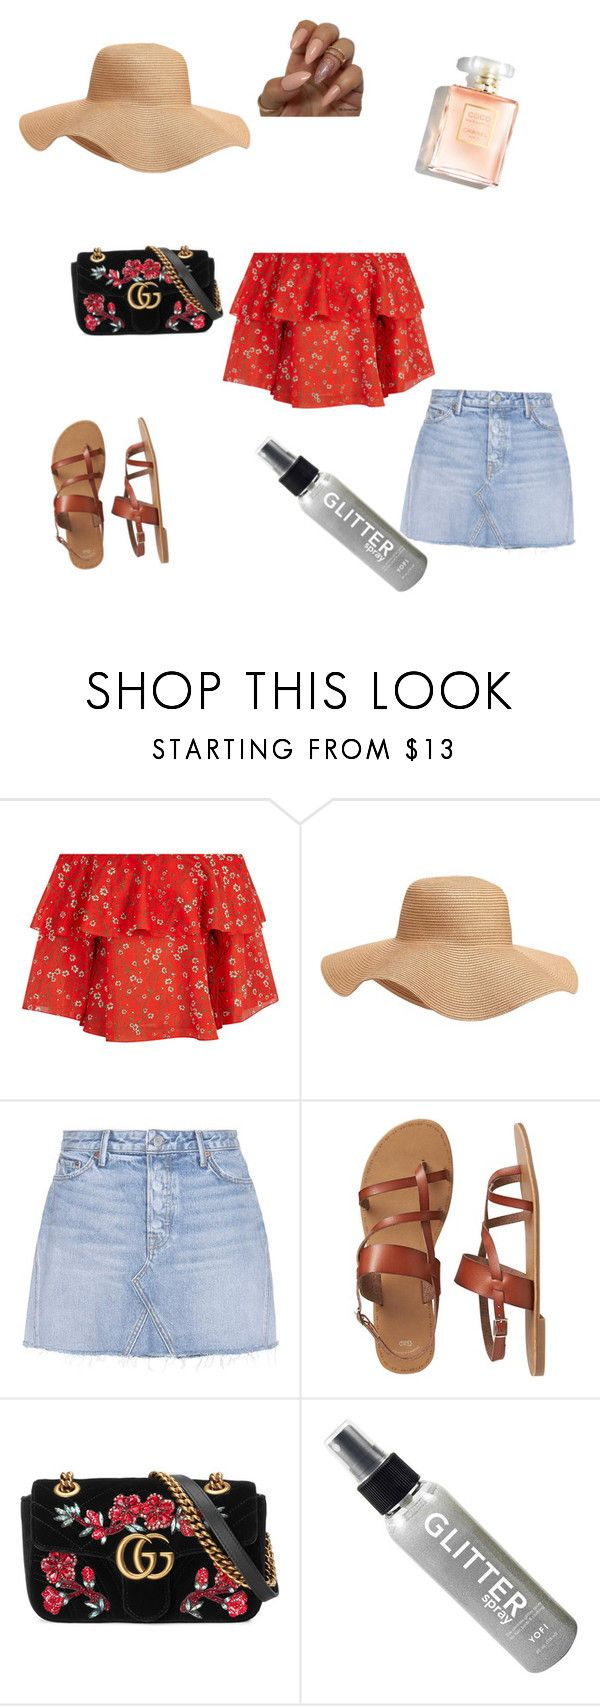 """Summer2k17"" by edensnatural on Polyvore featuring Alice + Olivia, Old Navy, GRLFRND, Gap and Gucci"